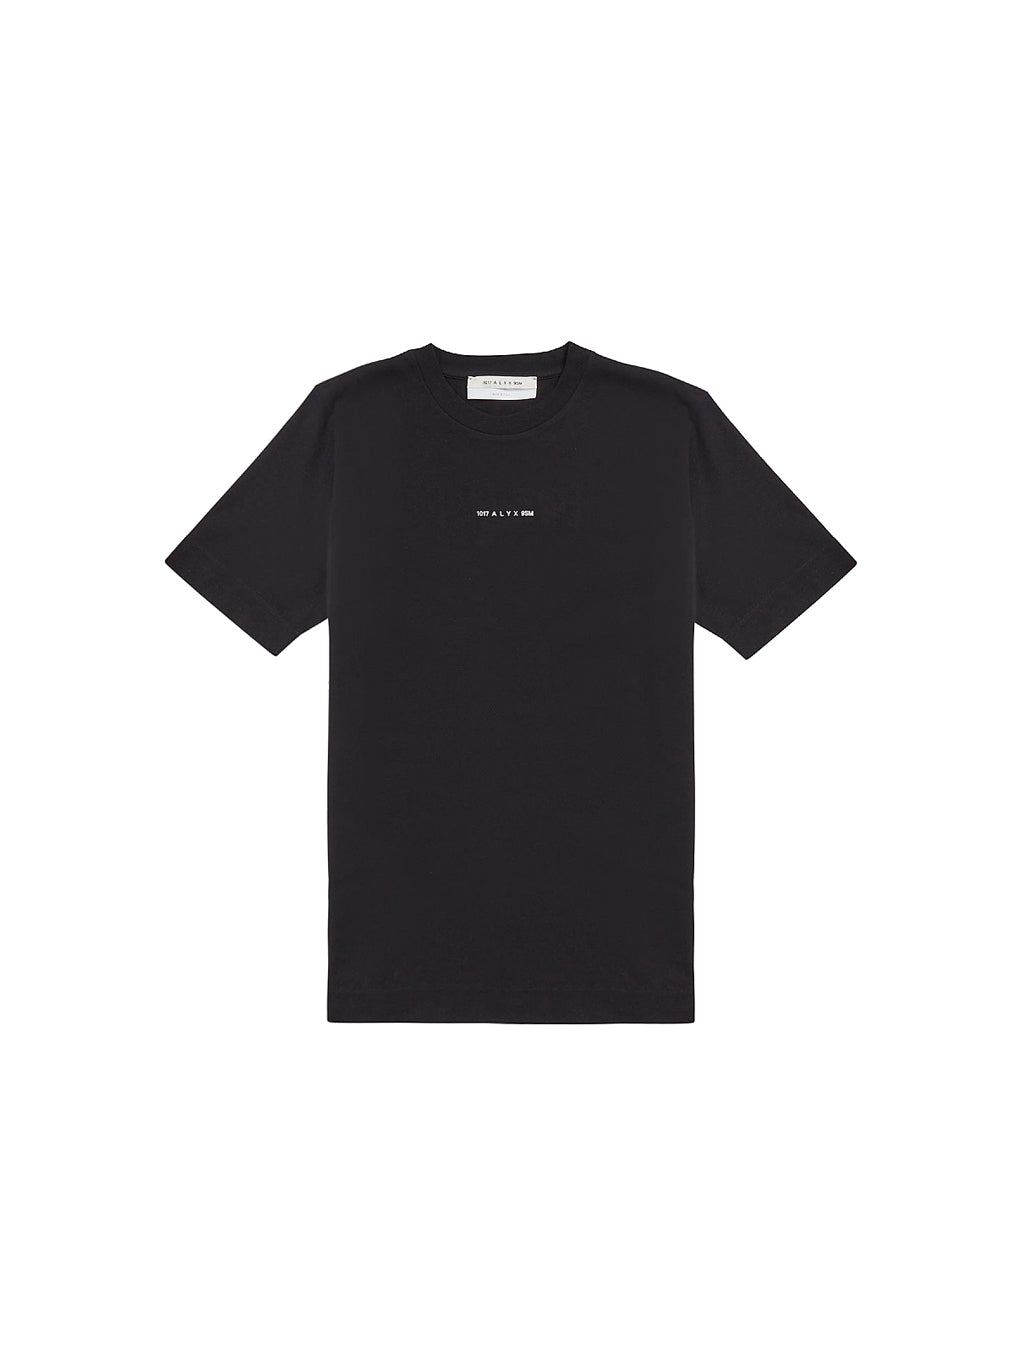 Black Collection Name T-Shirt